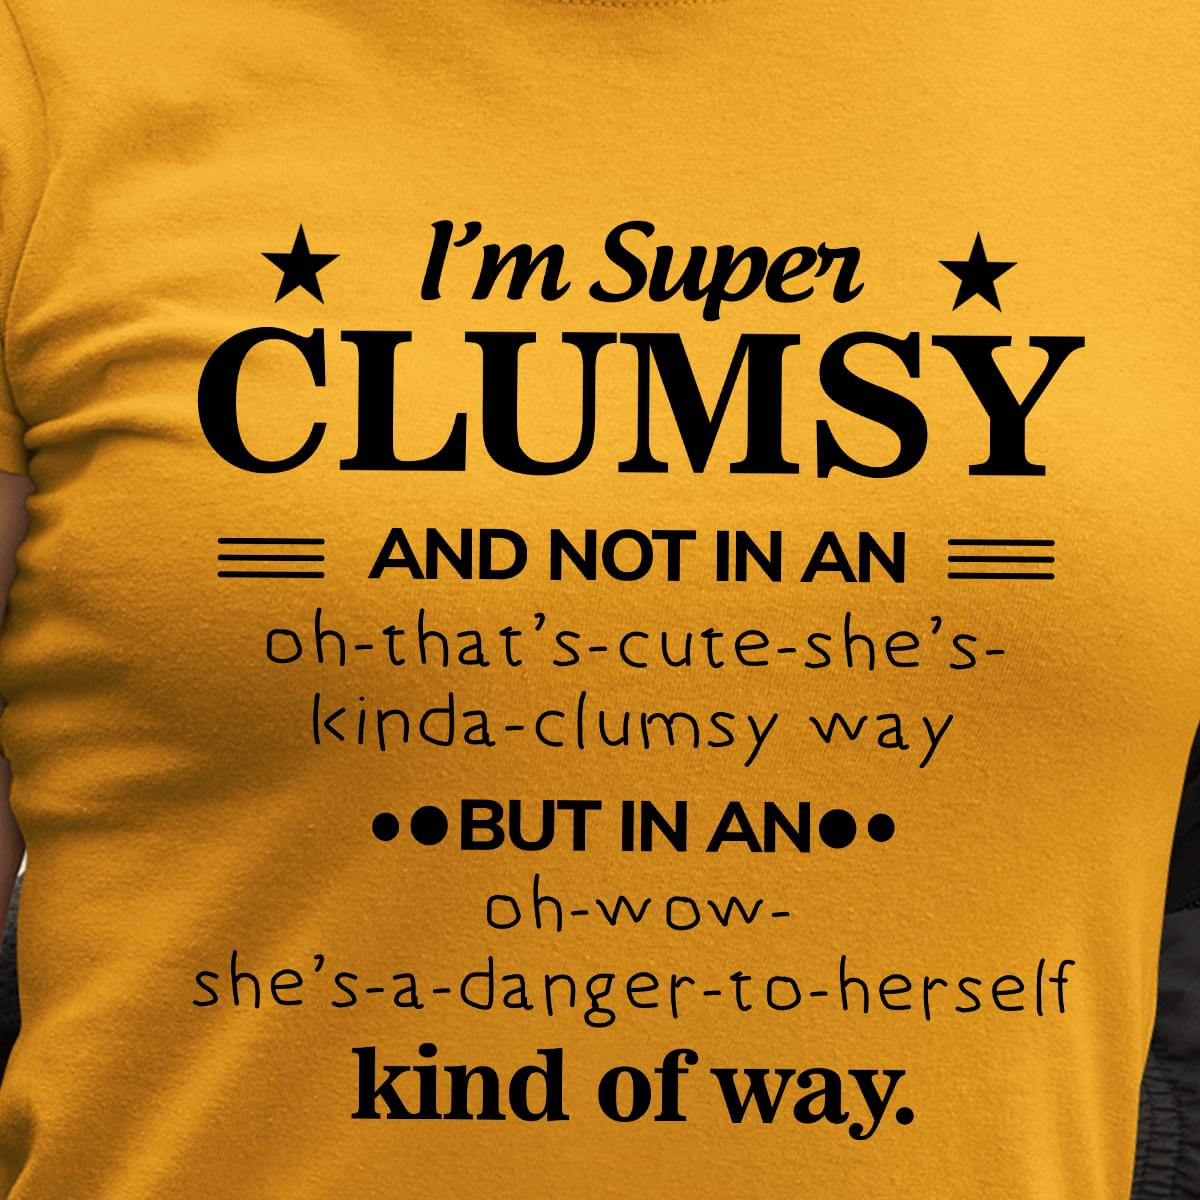 Im Super Clumsy Not In Oh Thats Cute Shes Kinda Clumsy Way But In An Shes A Danger Herself Kind Of Way cotton t-shirt Hoodie Mug